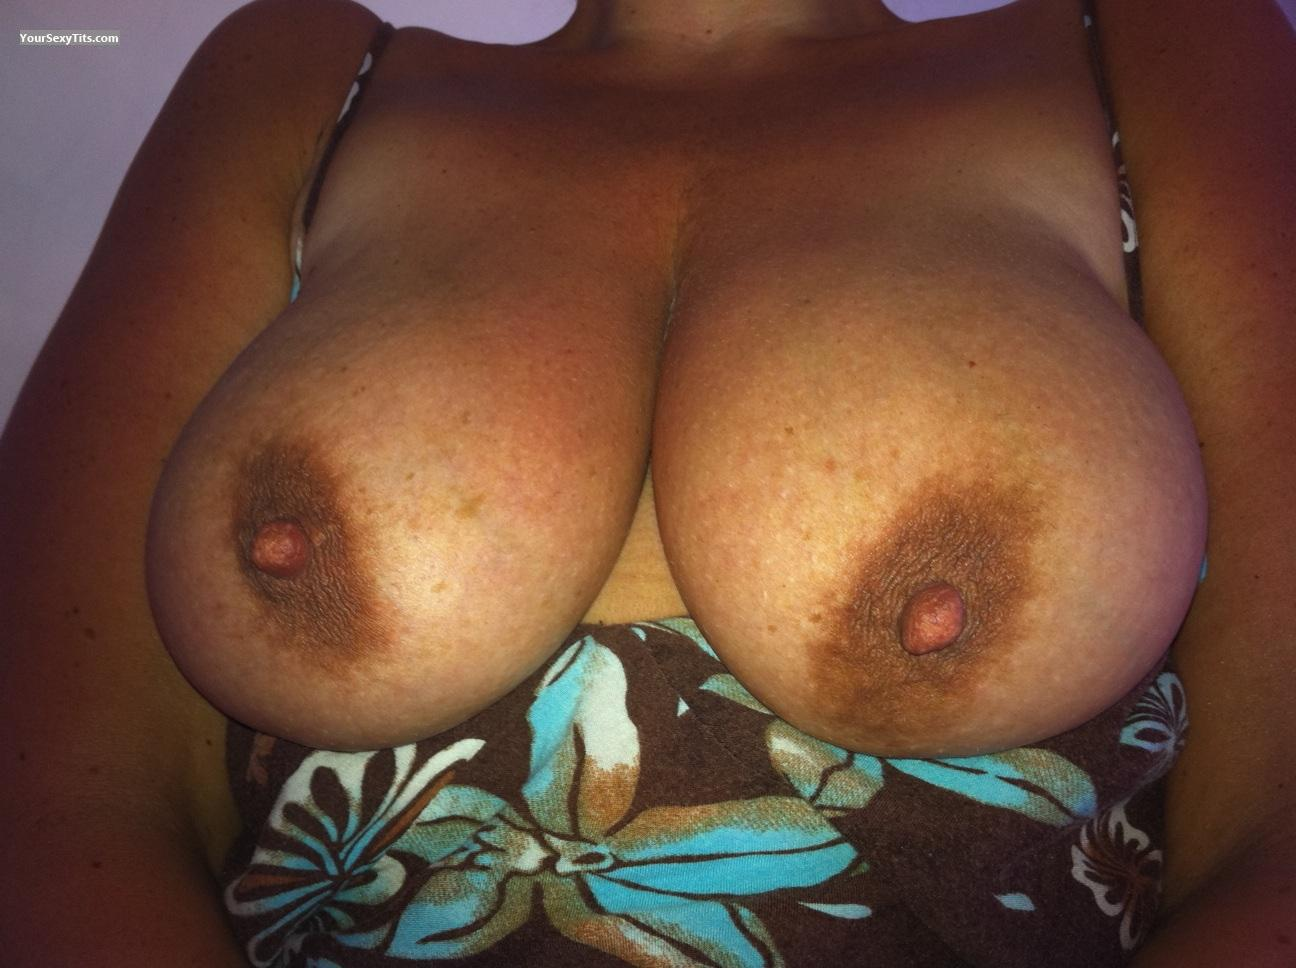 Tit Flash: Very Big Tits - Agemini from United Kingdom